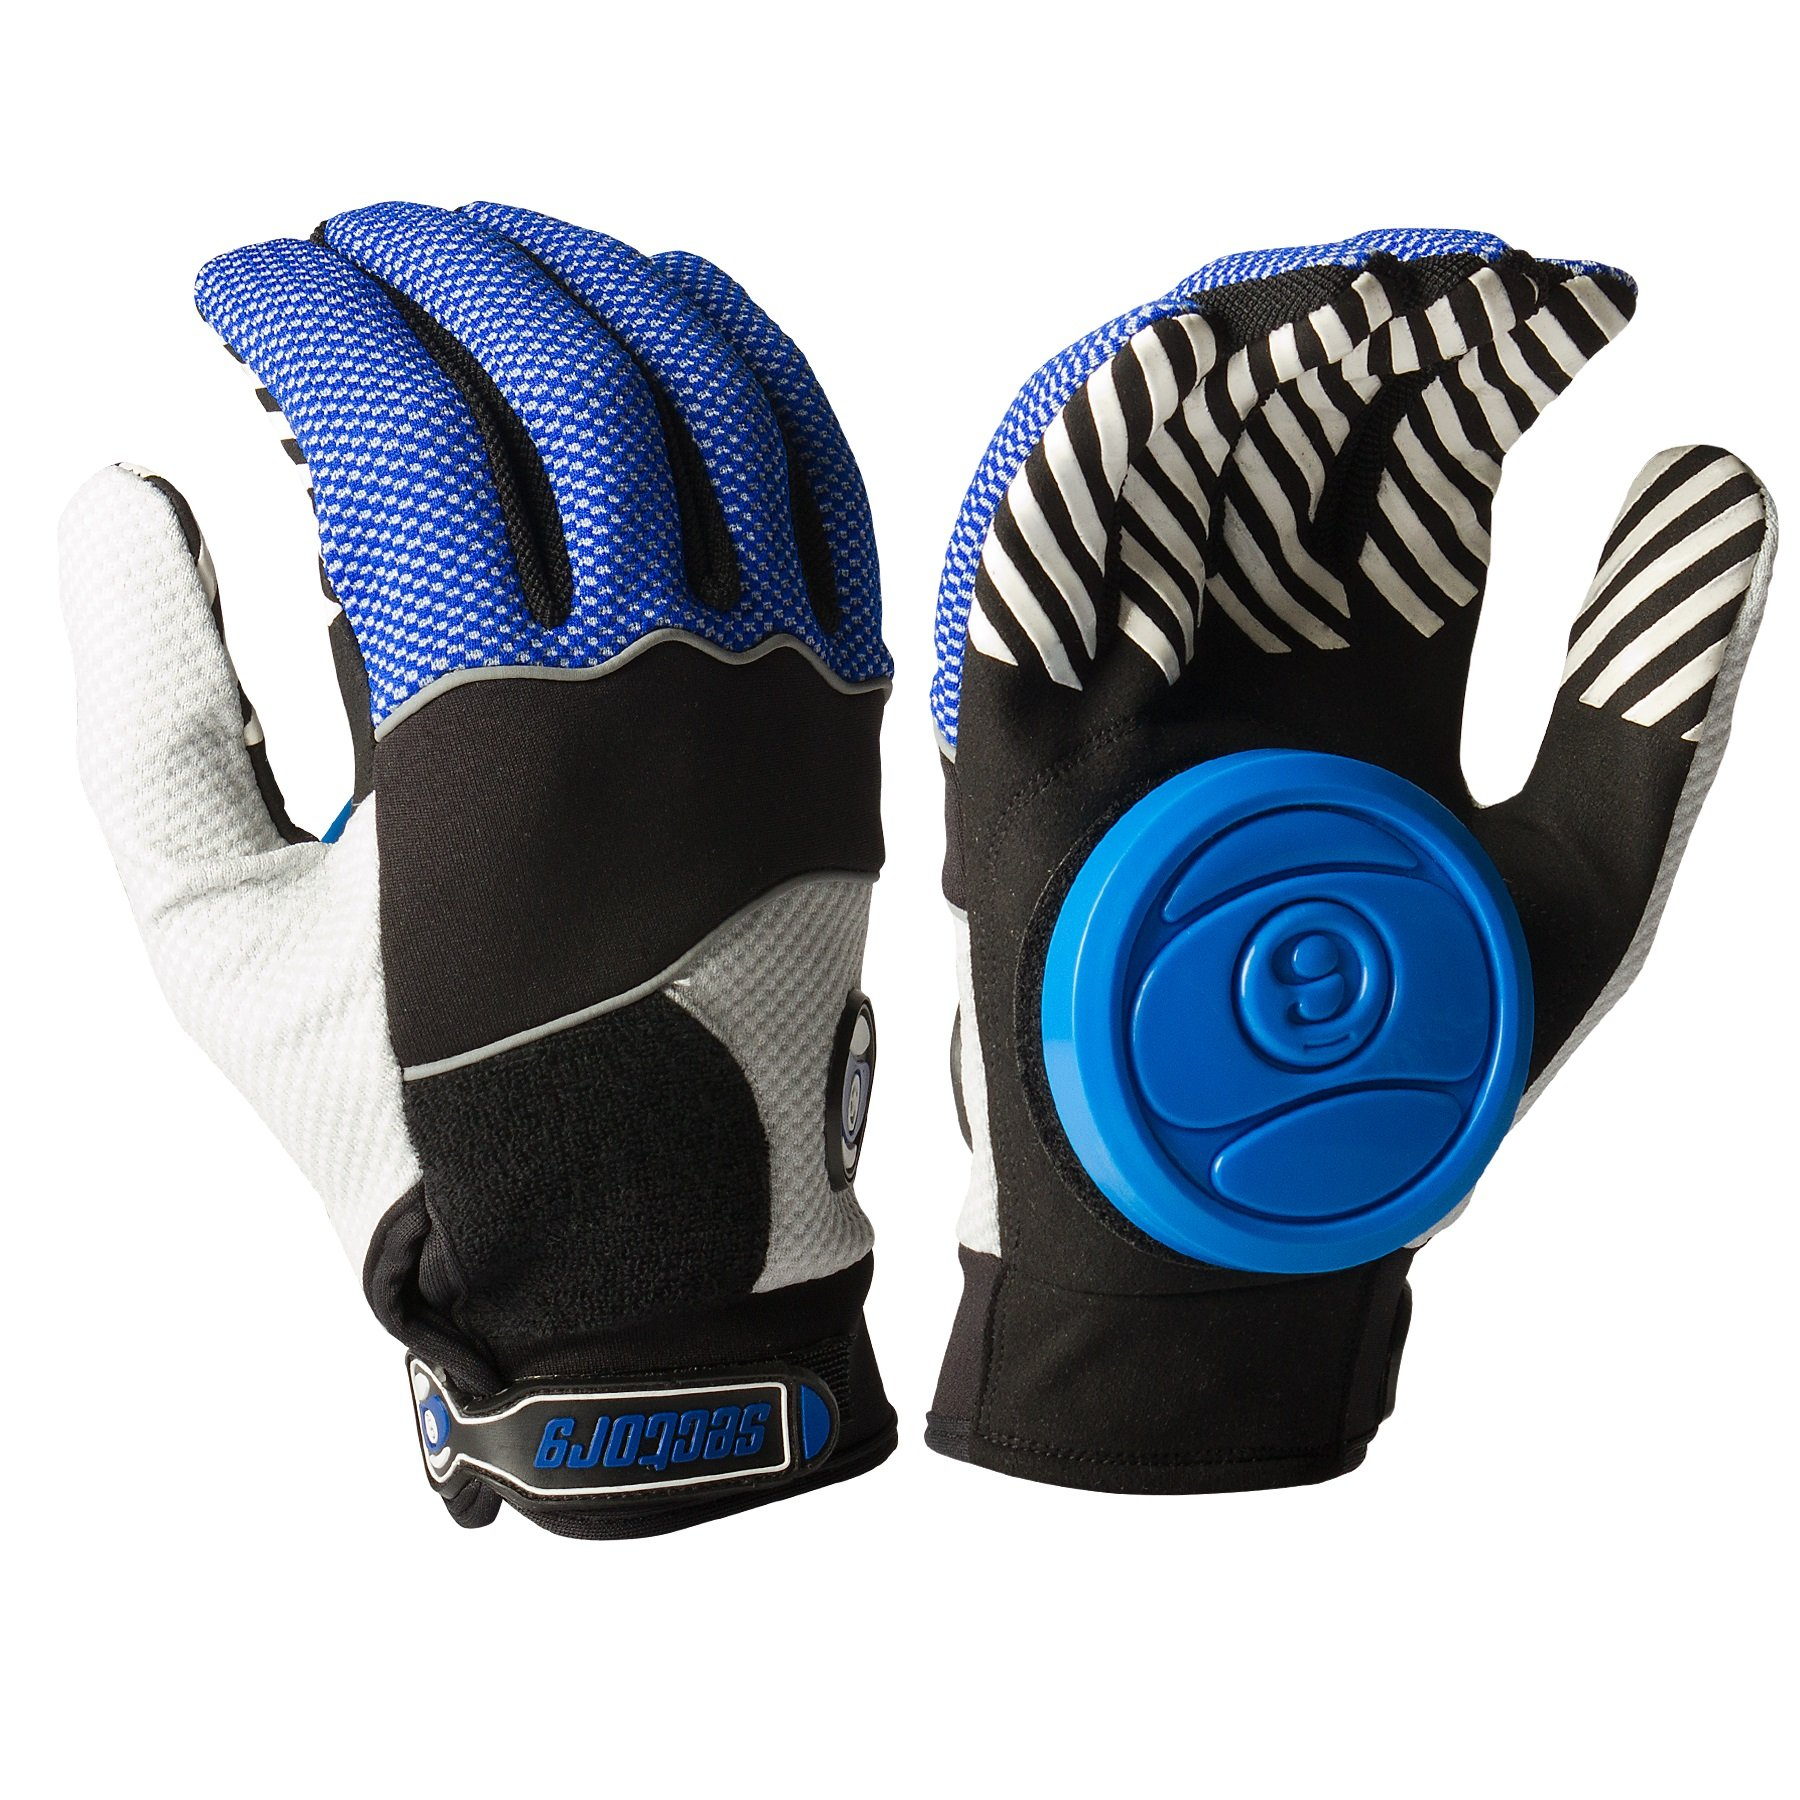 Sector 9 Apex 2014 Longboard Skateboard Slide Gloves Blue / Black / Grey / Size L/XL With Slide Pucks by Sector 9